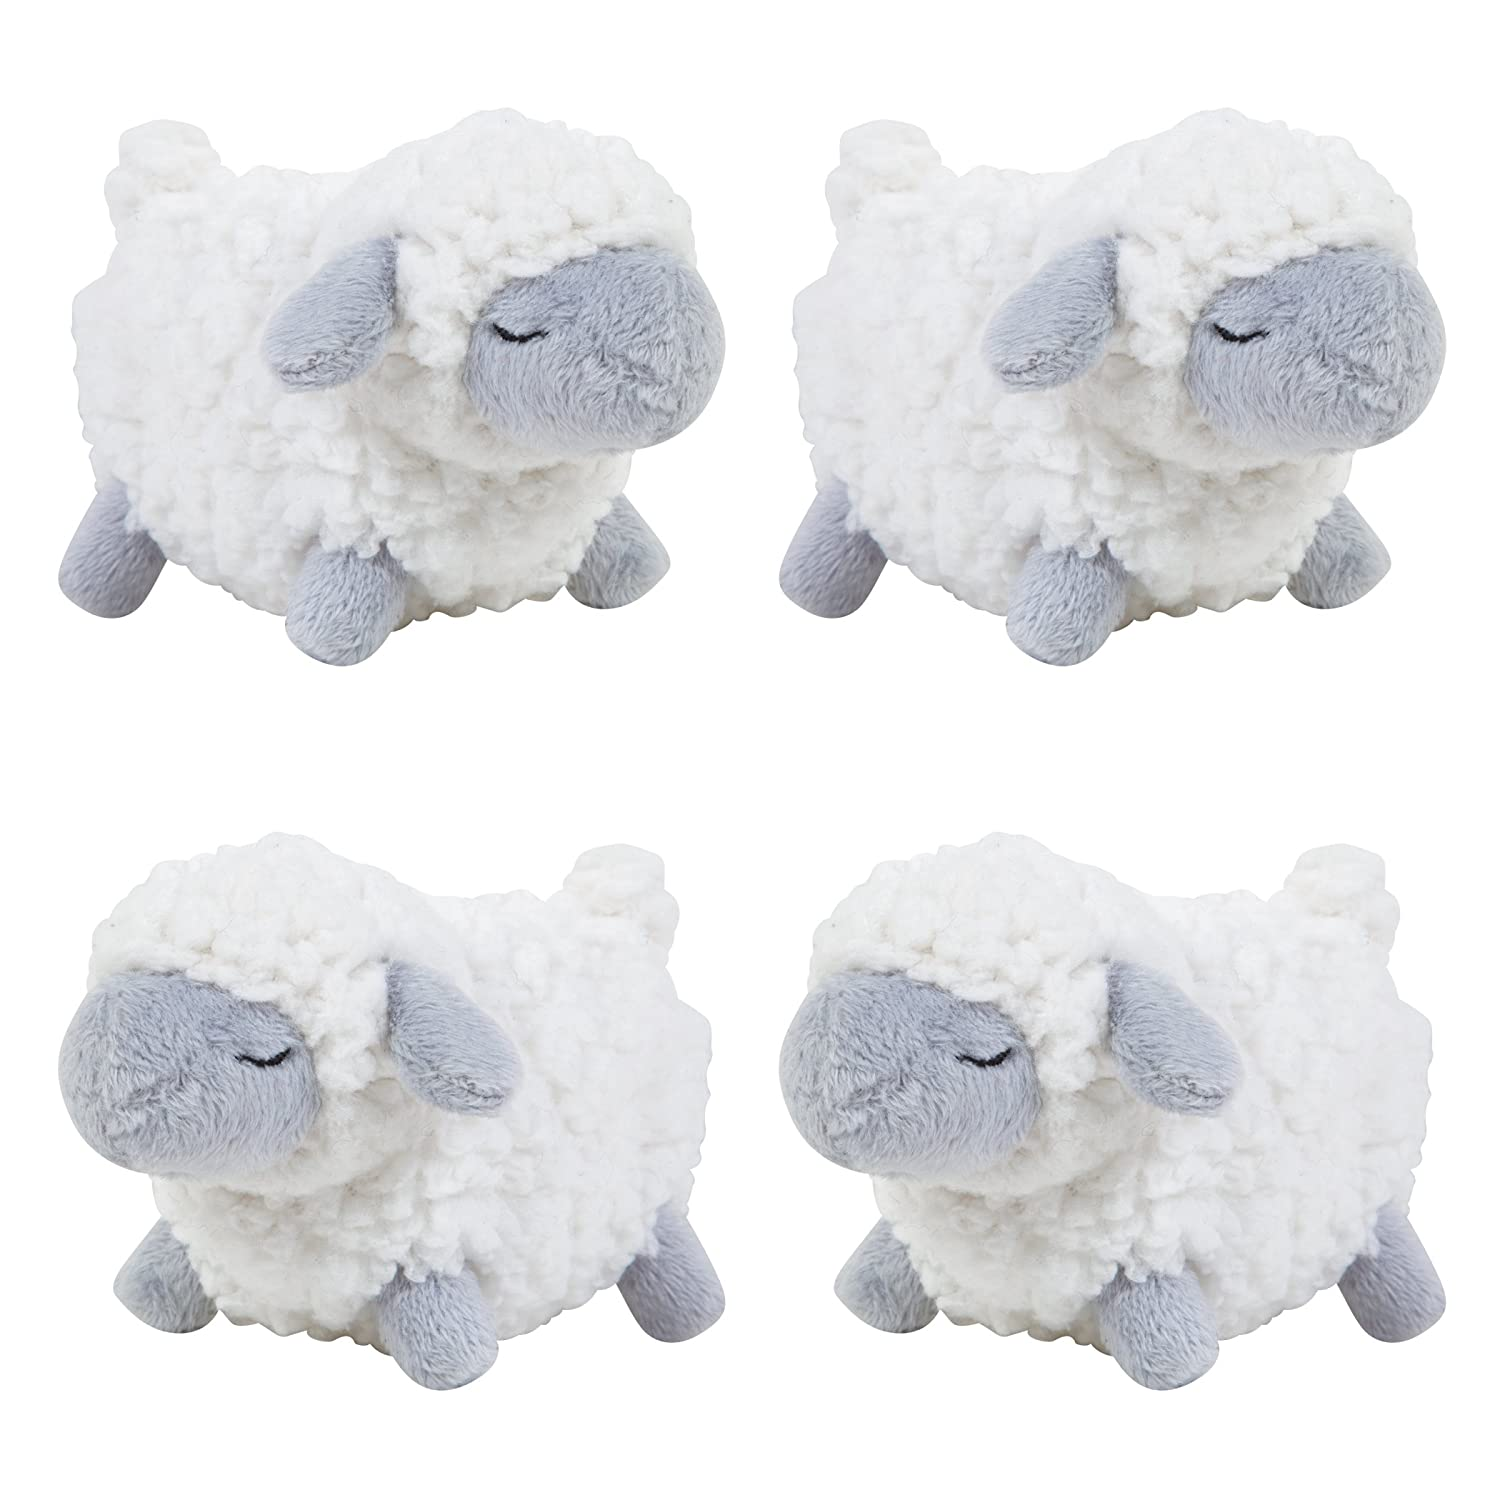 Trend Lab Counting Sheep Musical Mobile White//Gray 102297